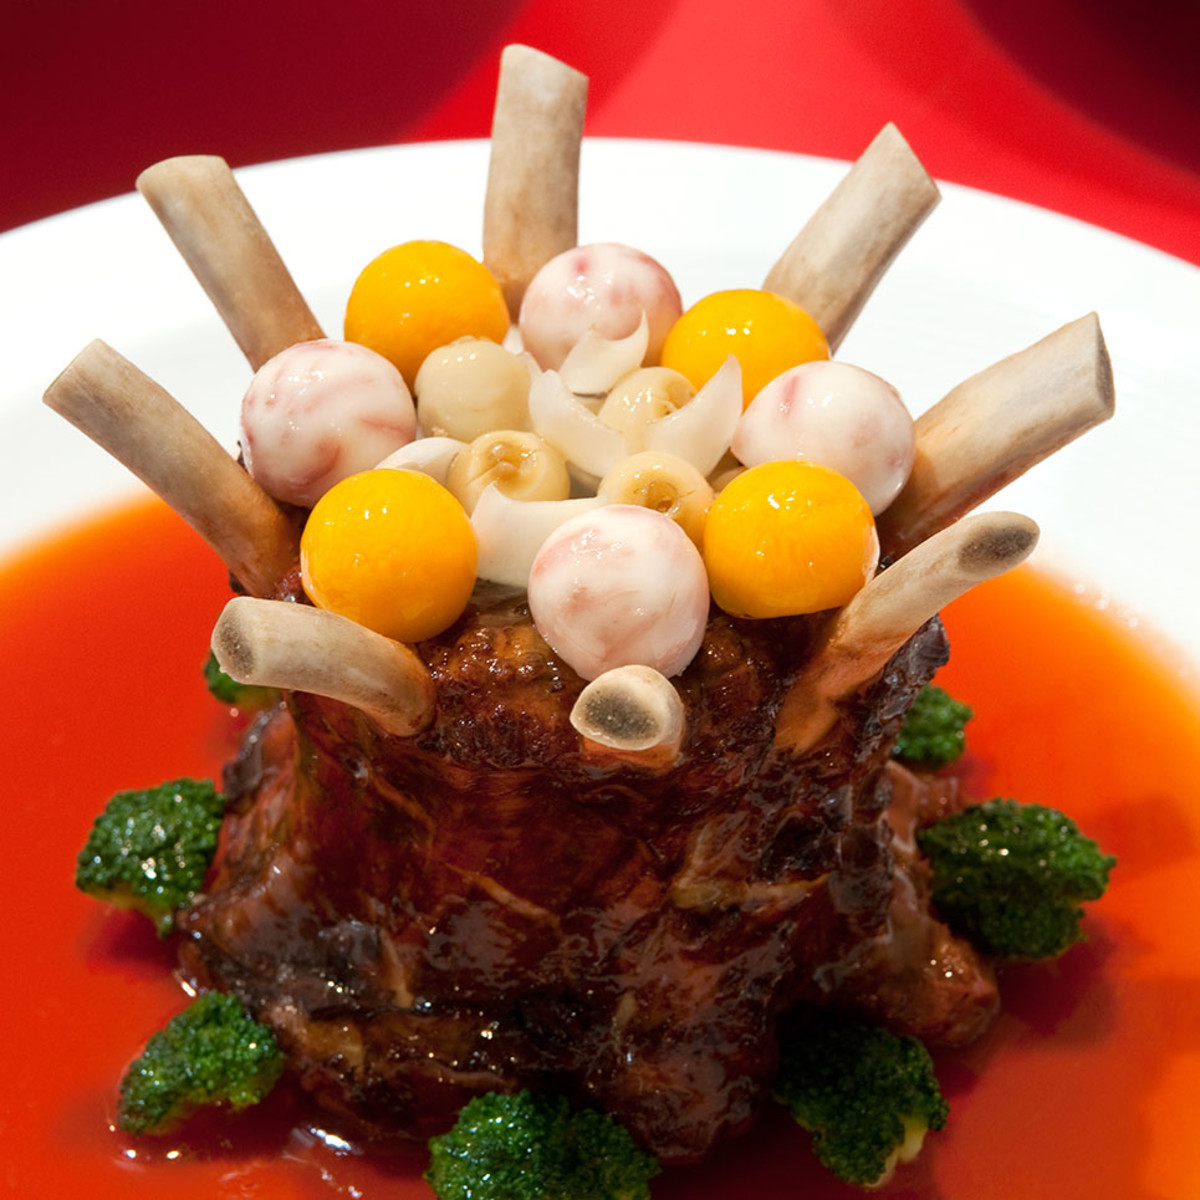 A gourmet ribs dish during a Chinese New Year Reunion Dinner.